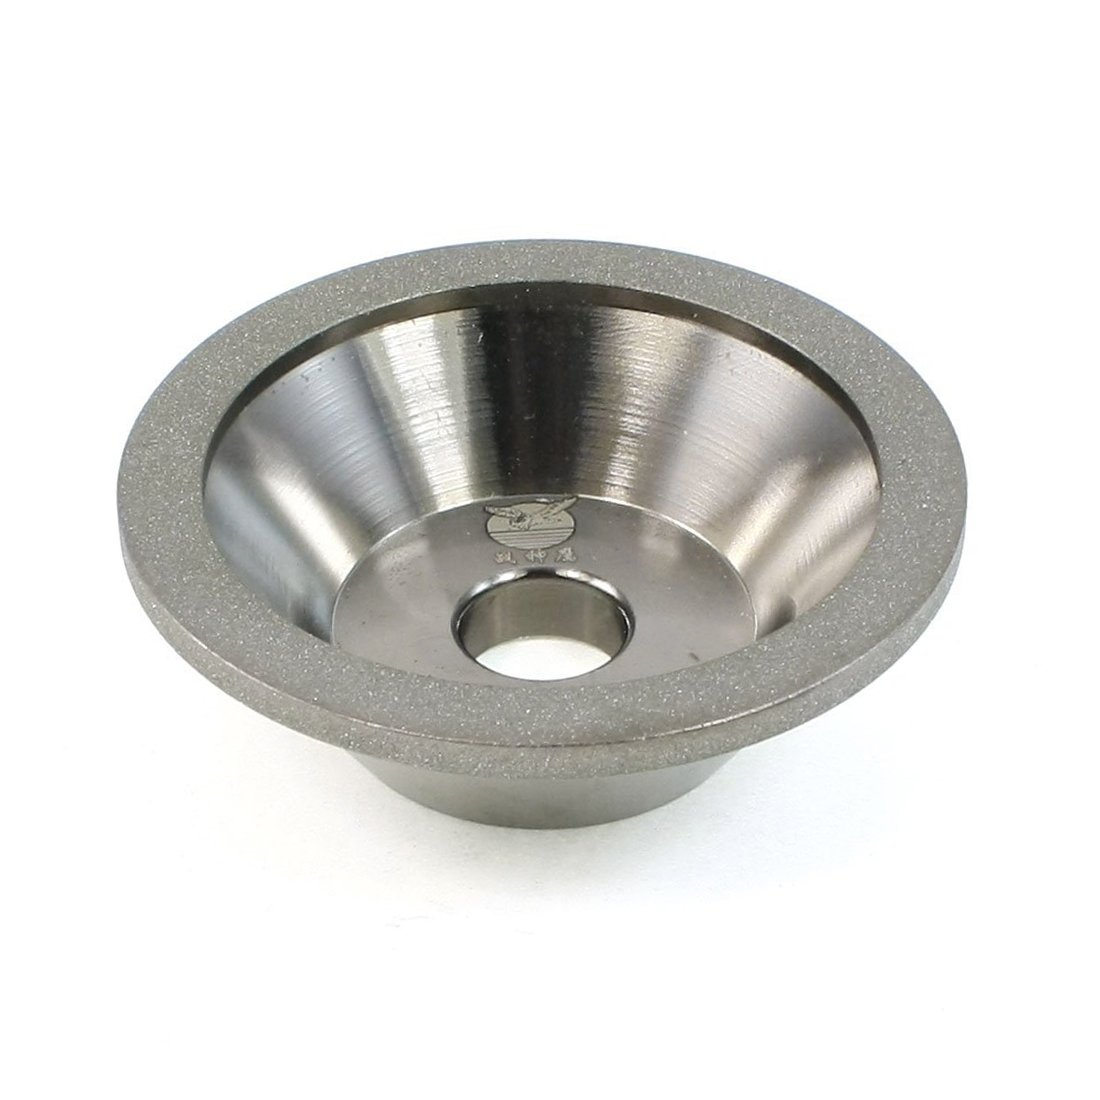 Preamer 100*32*20*10*5 Cup Diamond Grinding Wheel for Alloy Blade Tungsten by Preamer